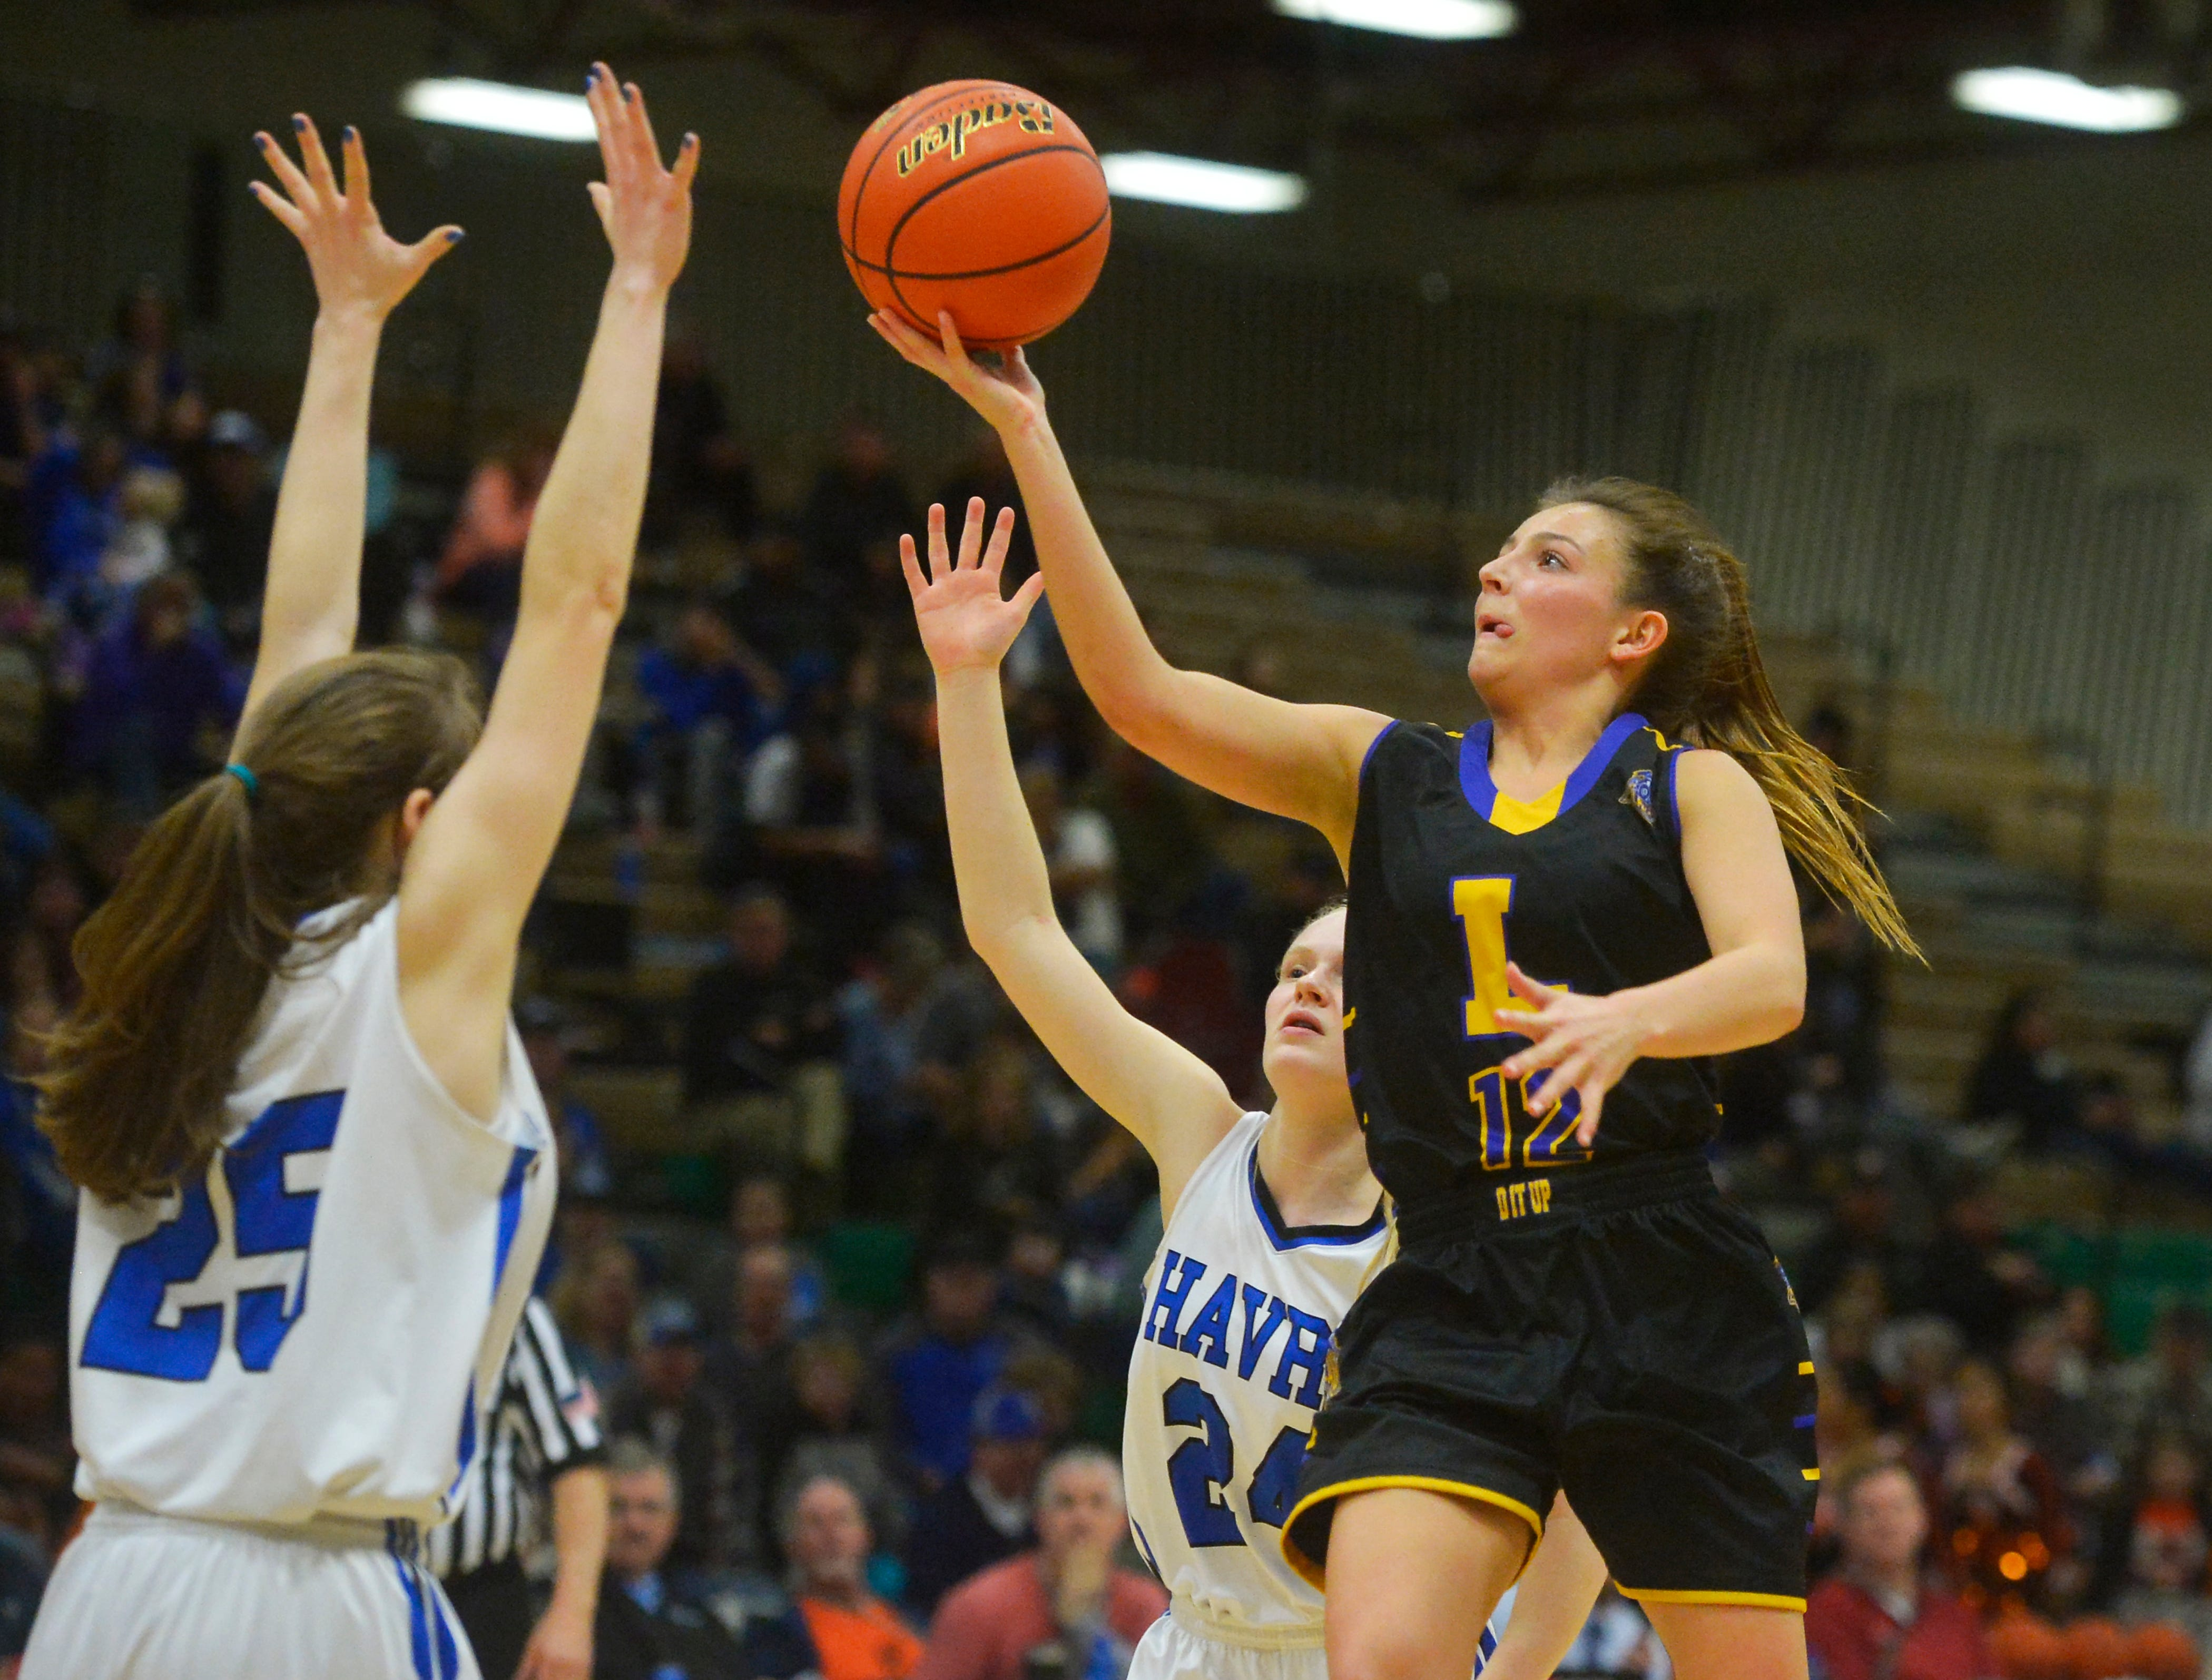 Laurel's Aspen Cotter shoots a layup in the semifinal game against Havre during the State Class A Basketball Tournament in the Four Seasons Arena, Friday.